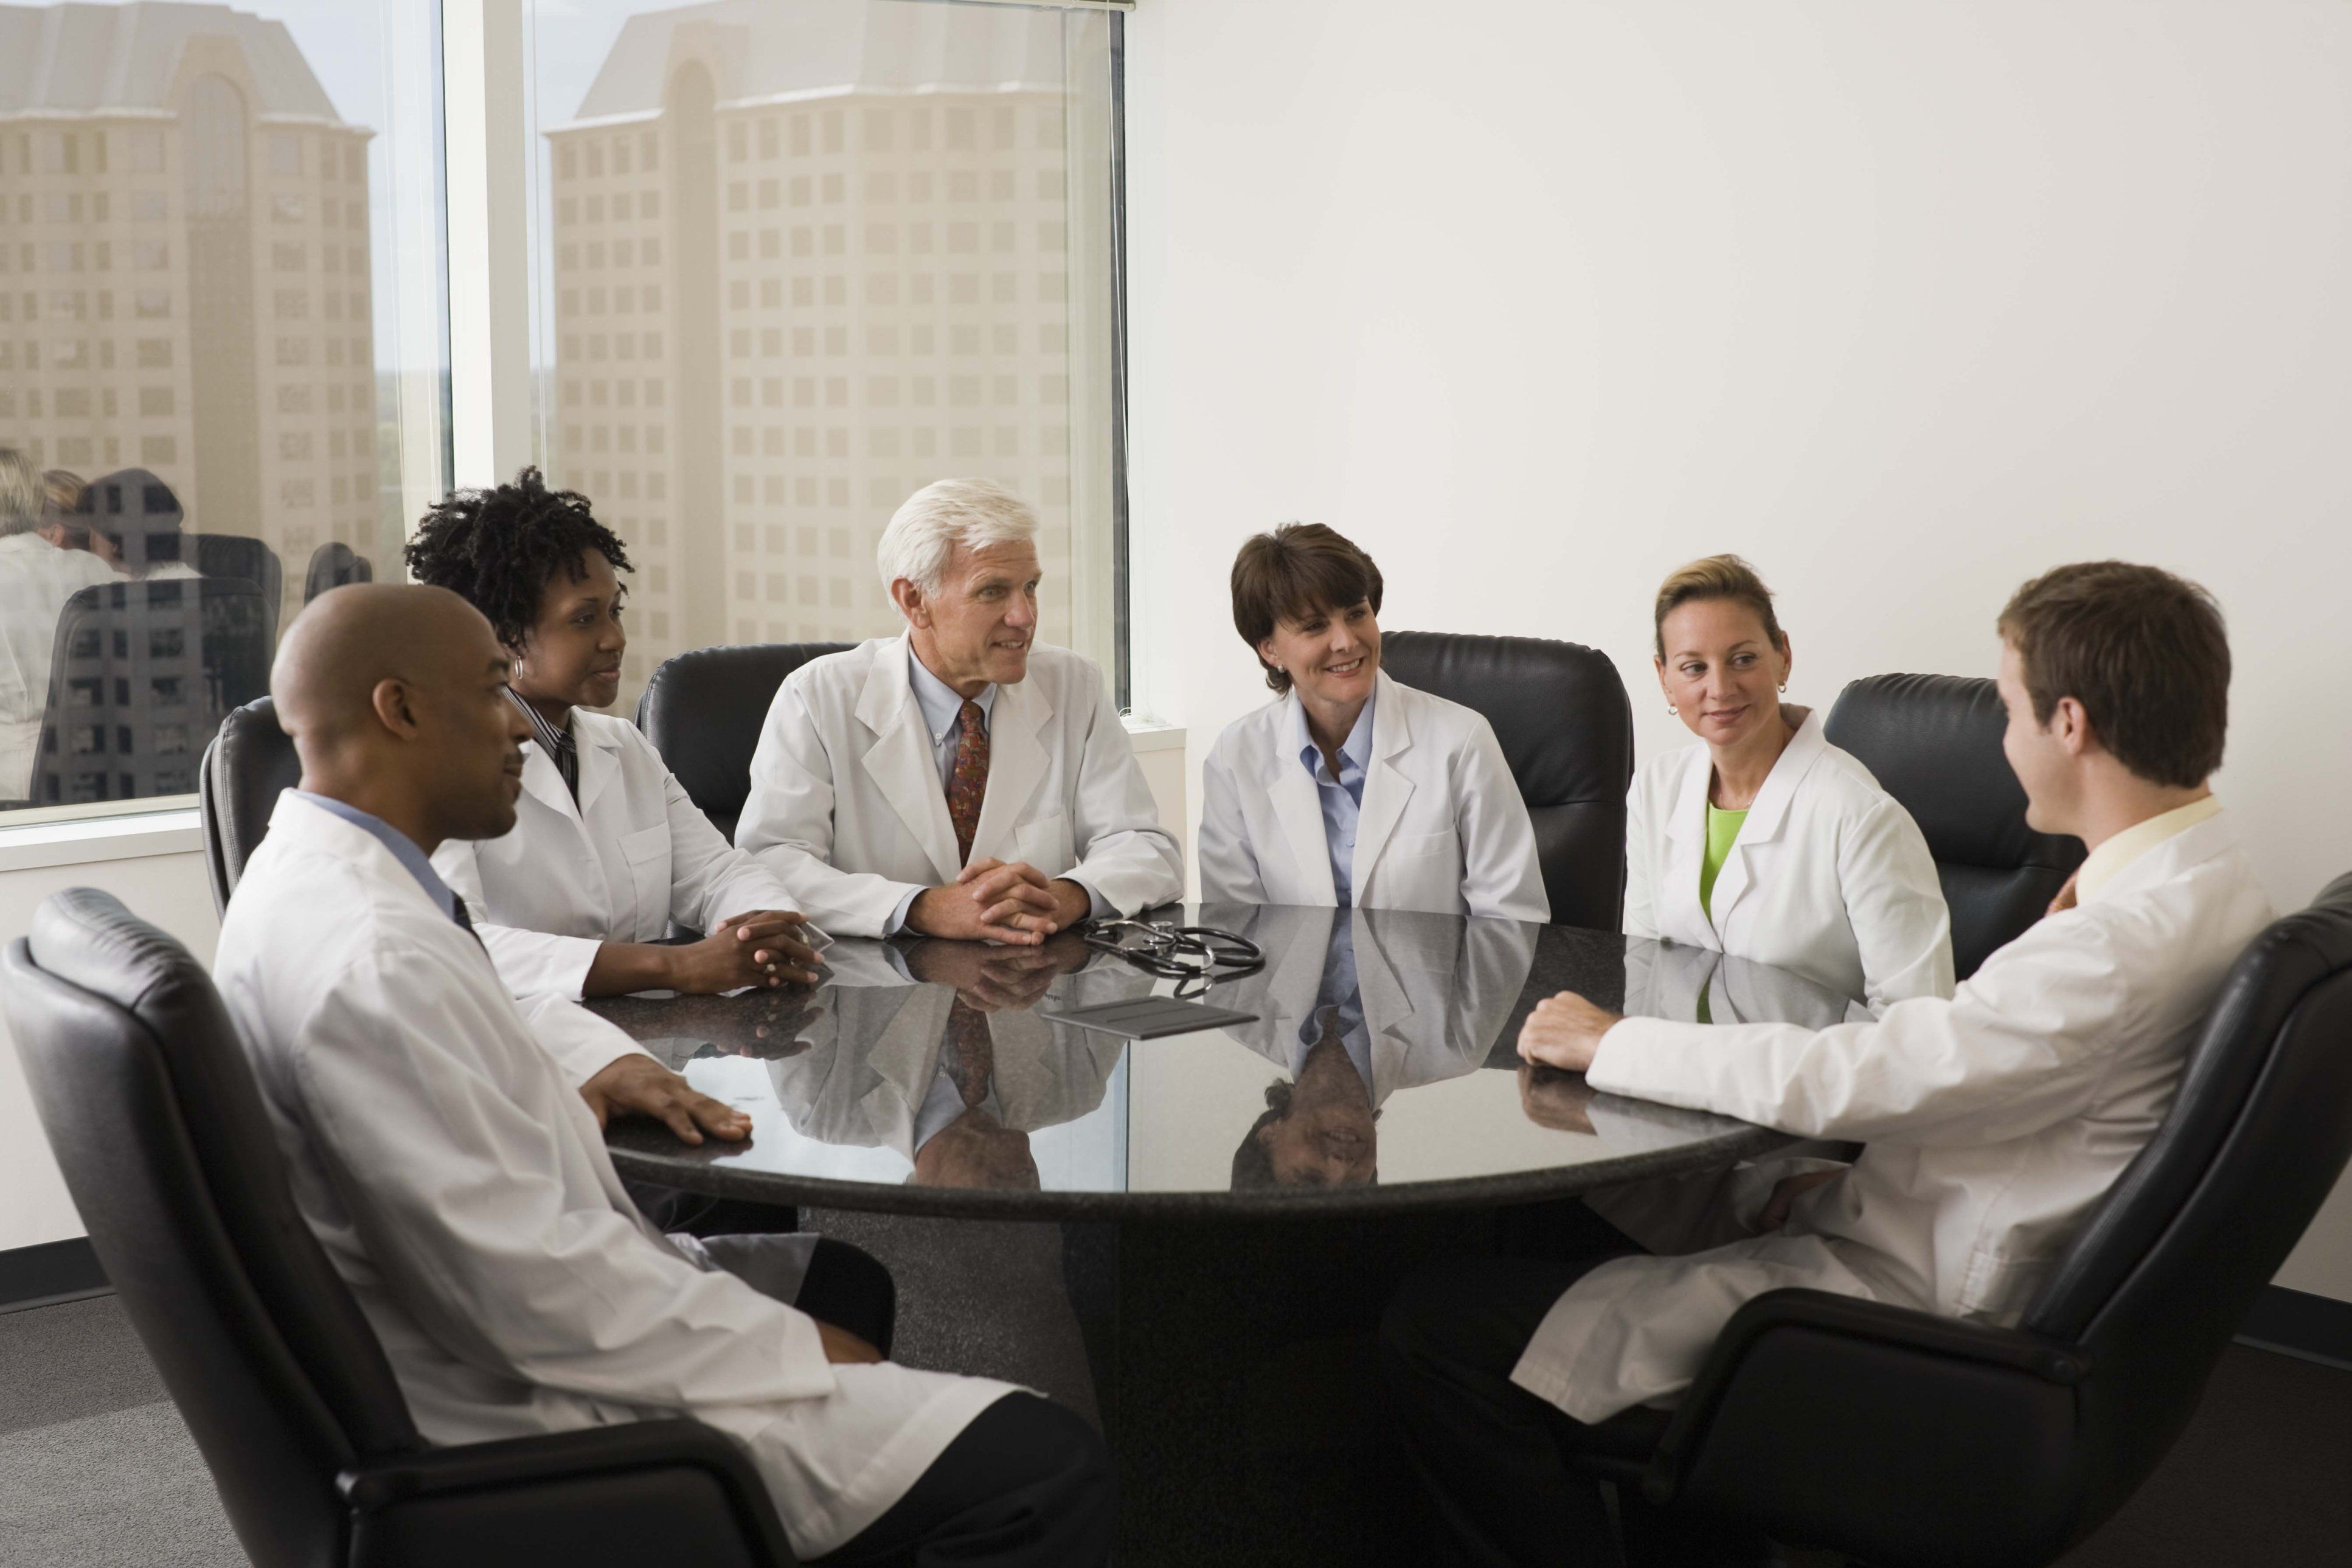 Doctors sitting at a conference table